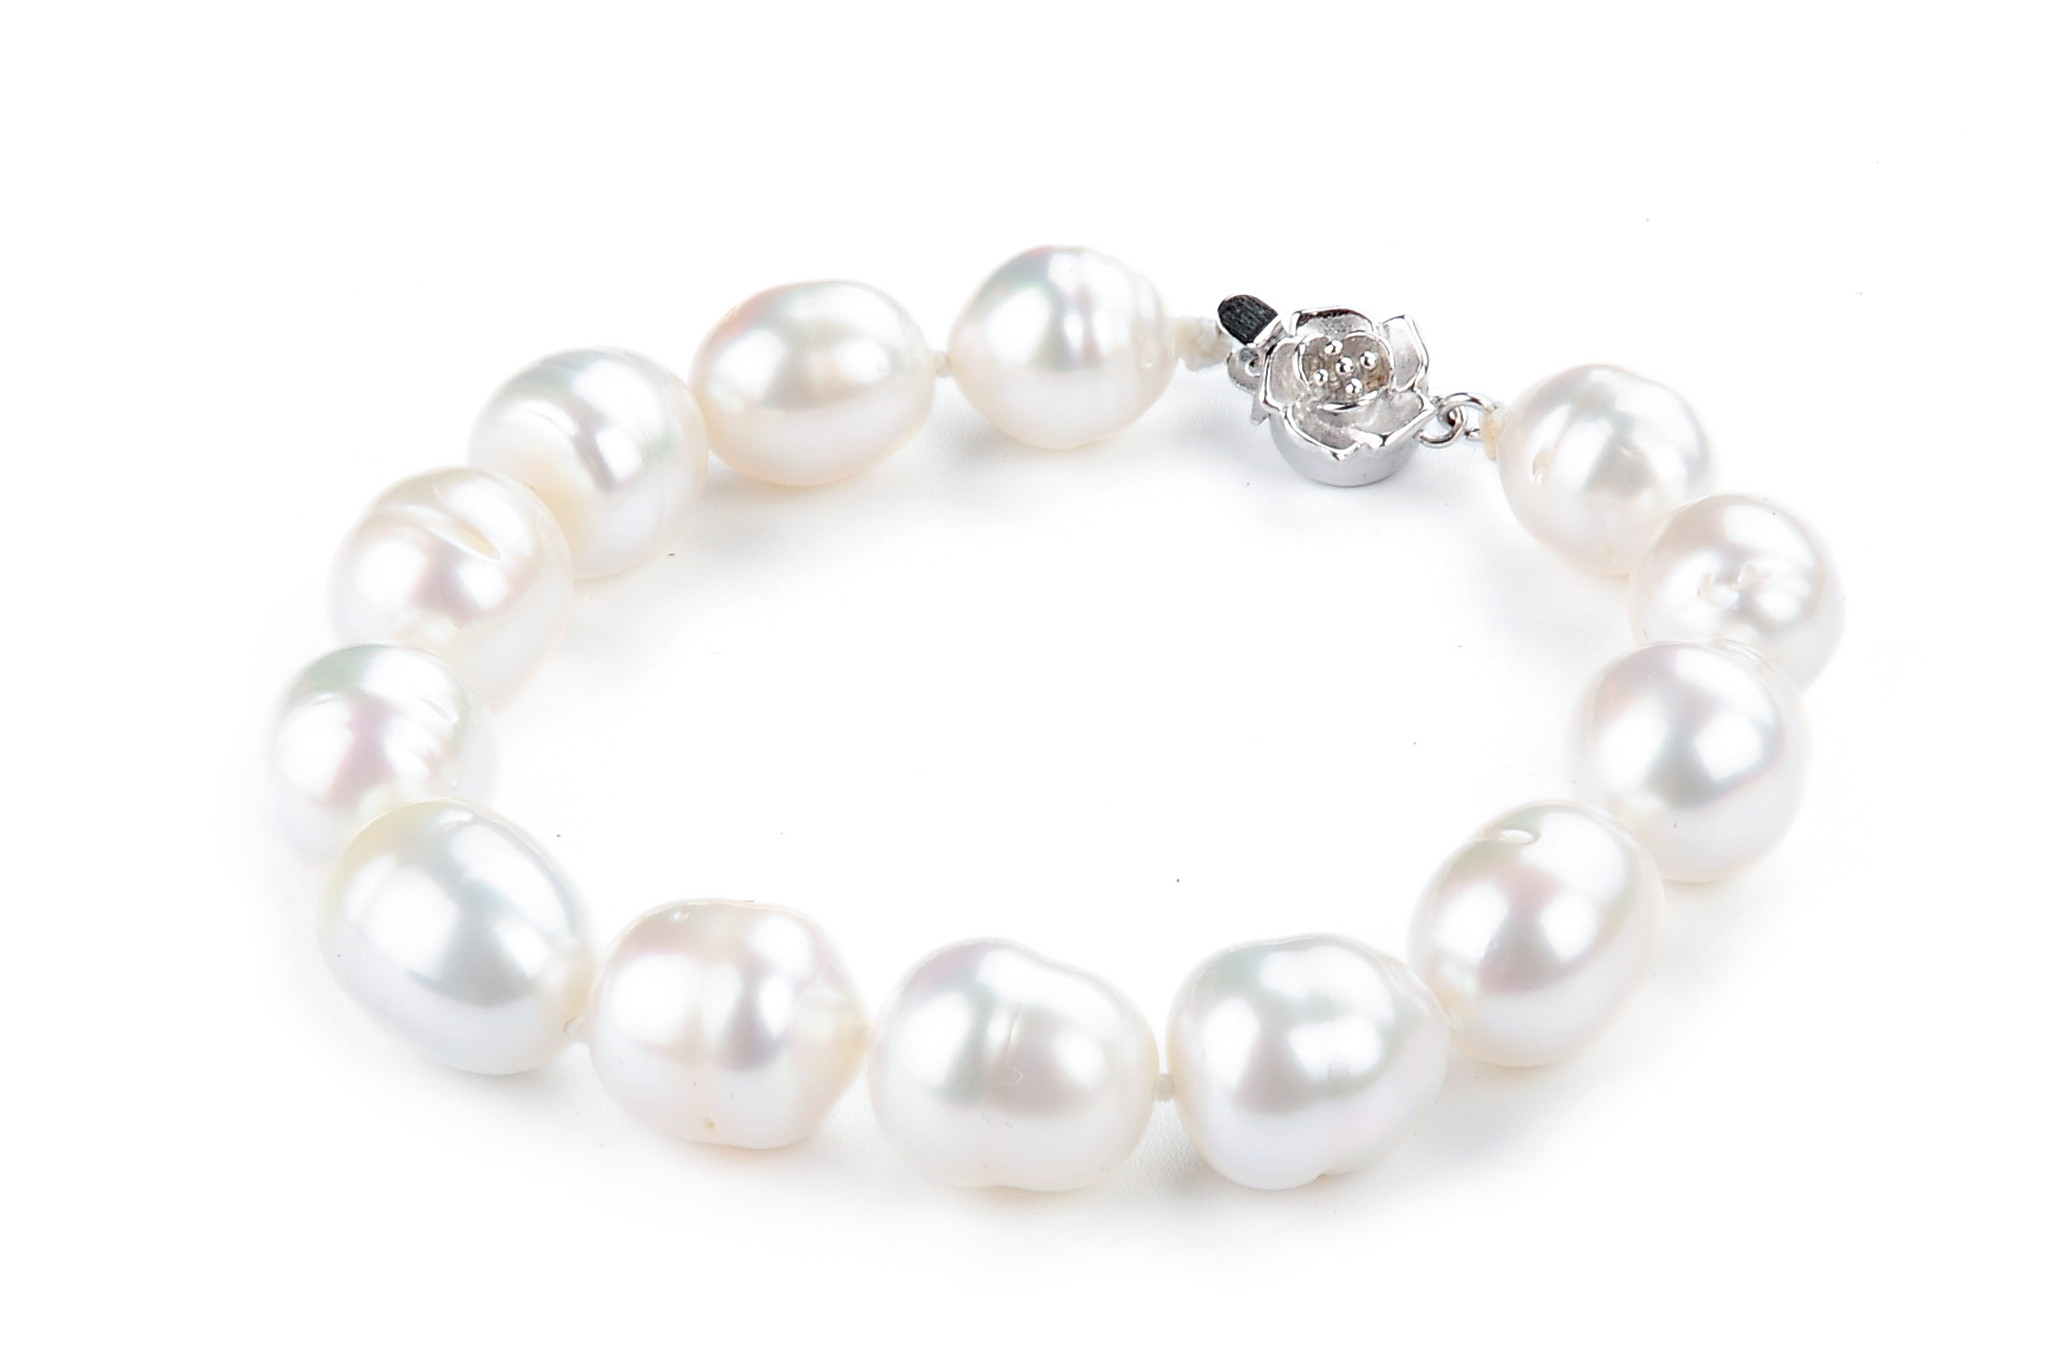 Huge 15X11.5 mm Genuine White South Sea Baroque Pearl Bracelet -br132